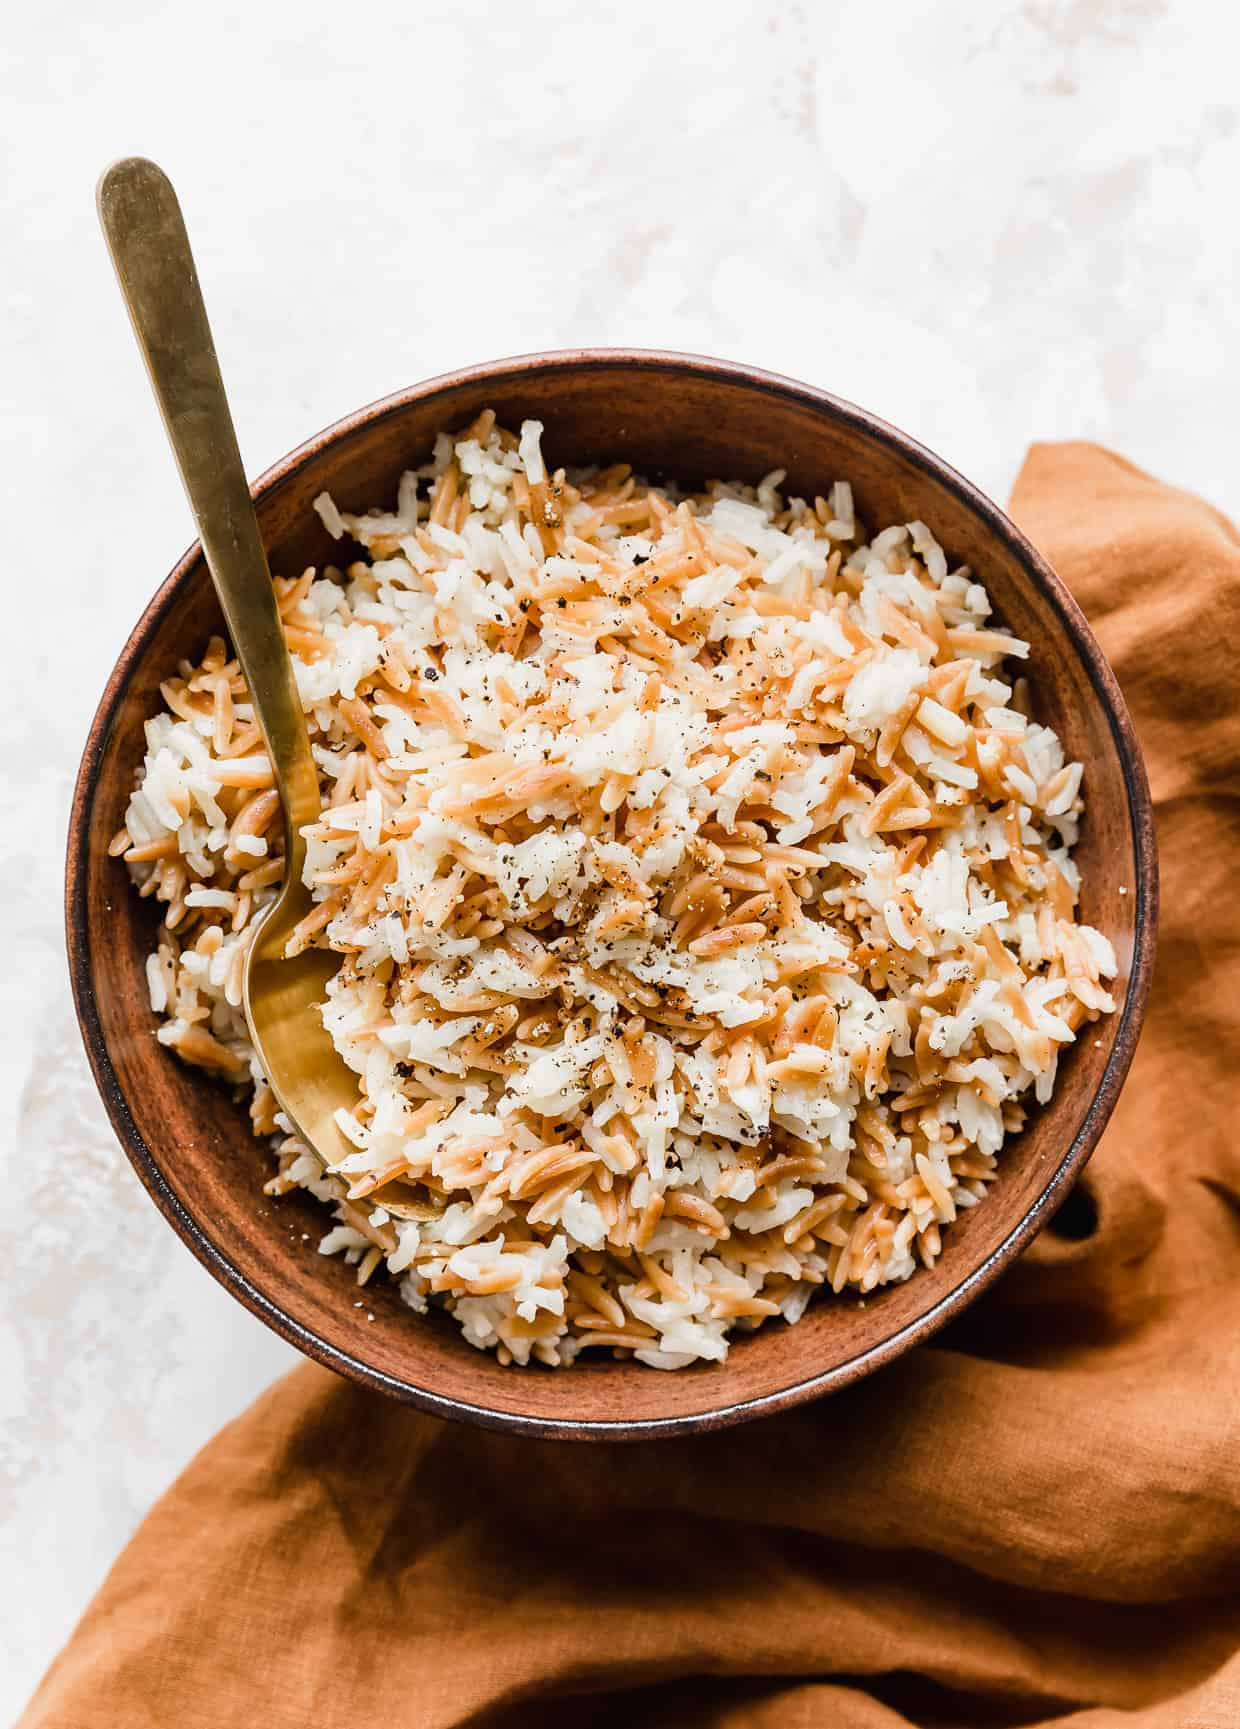 Orzo rice in a brown bowl with a golden spoon inside the bowl.